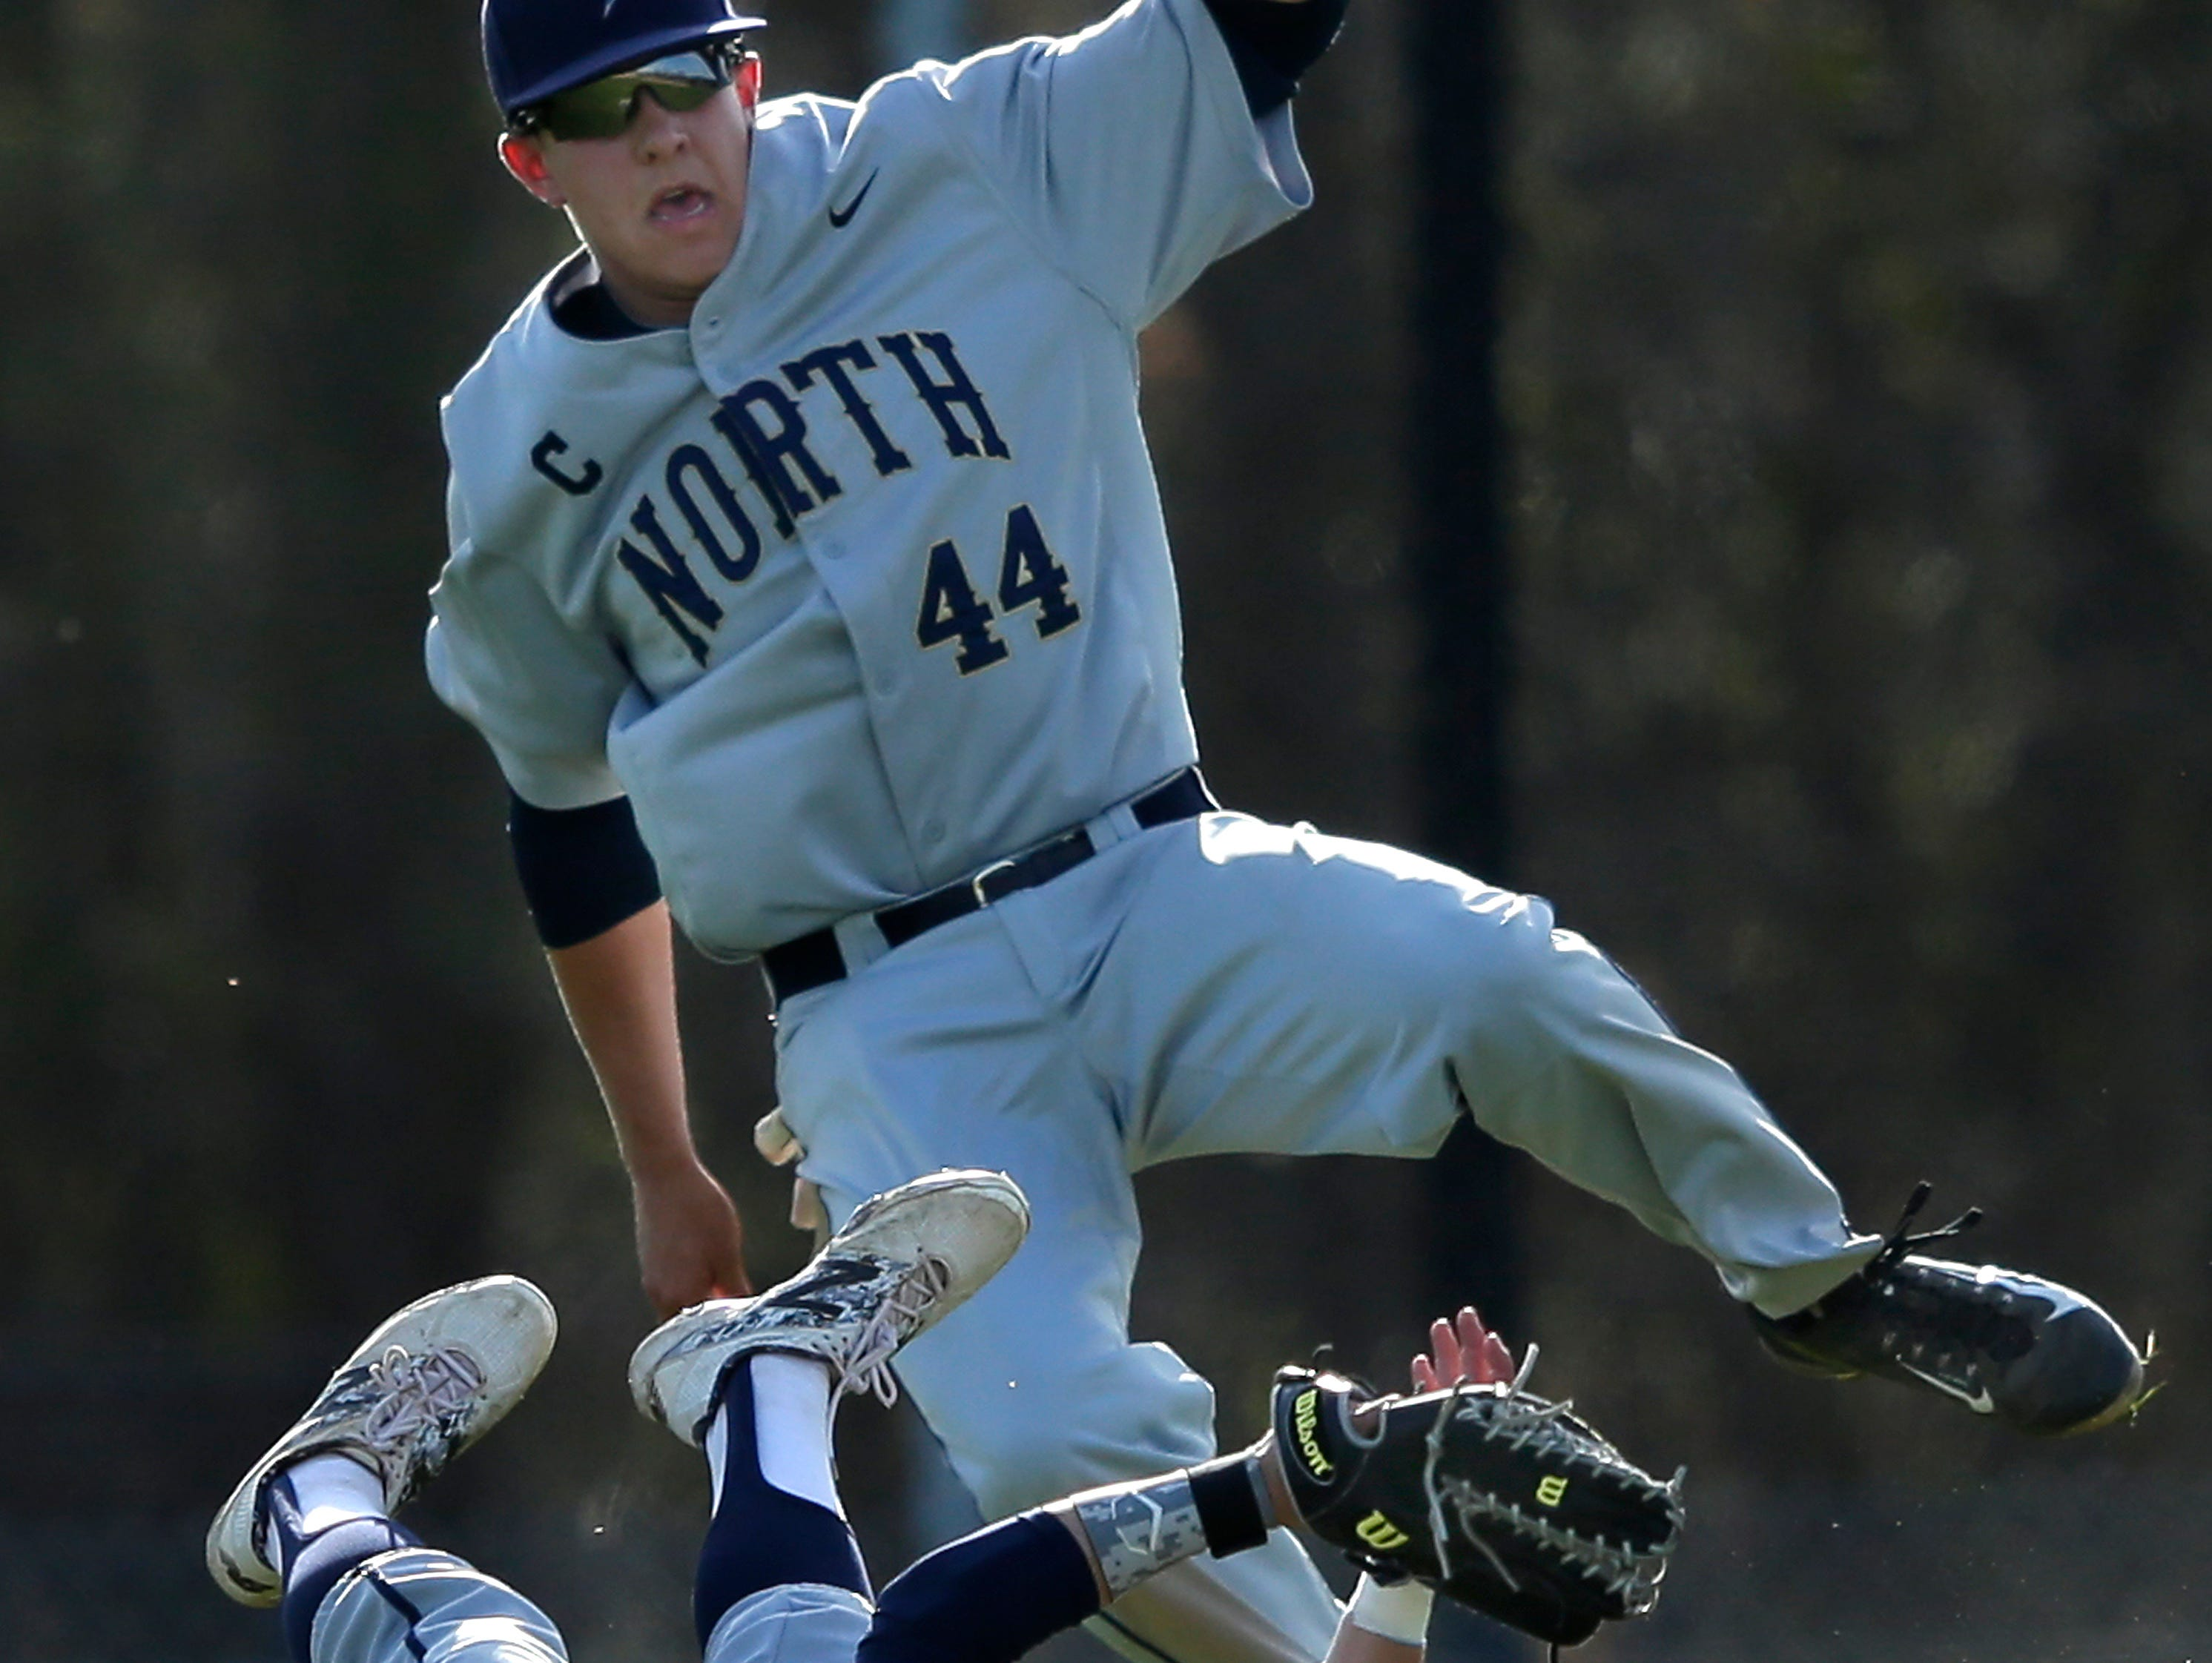 Appleton North High School center fielder Hunter Rolain (4) and second baseman Taylor Borchers (44) collide while chasing a fly ball during Tuesday's game against Kimberly High School in Kimberly.